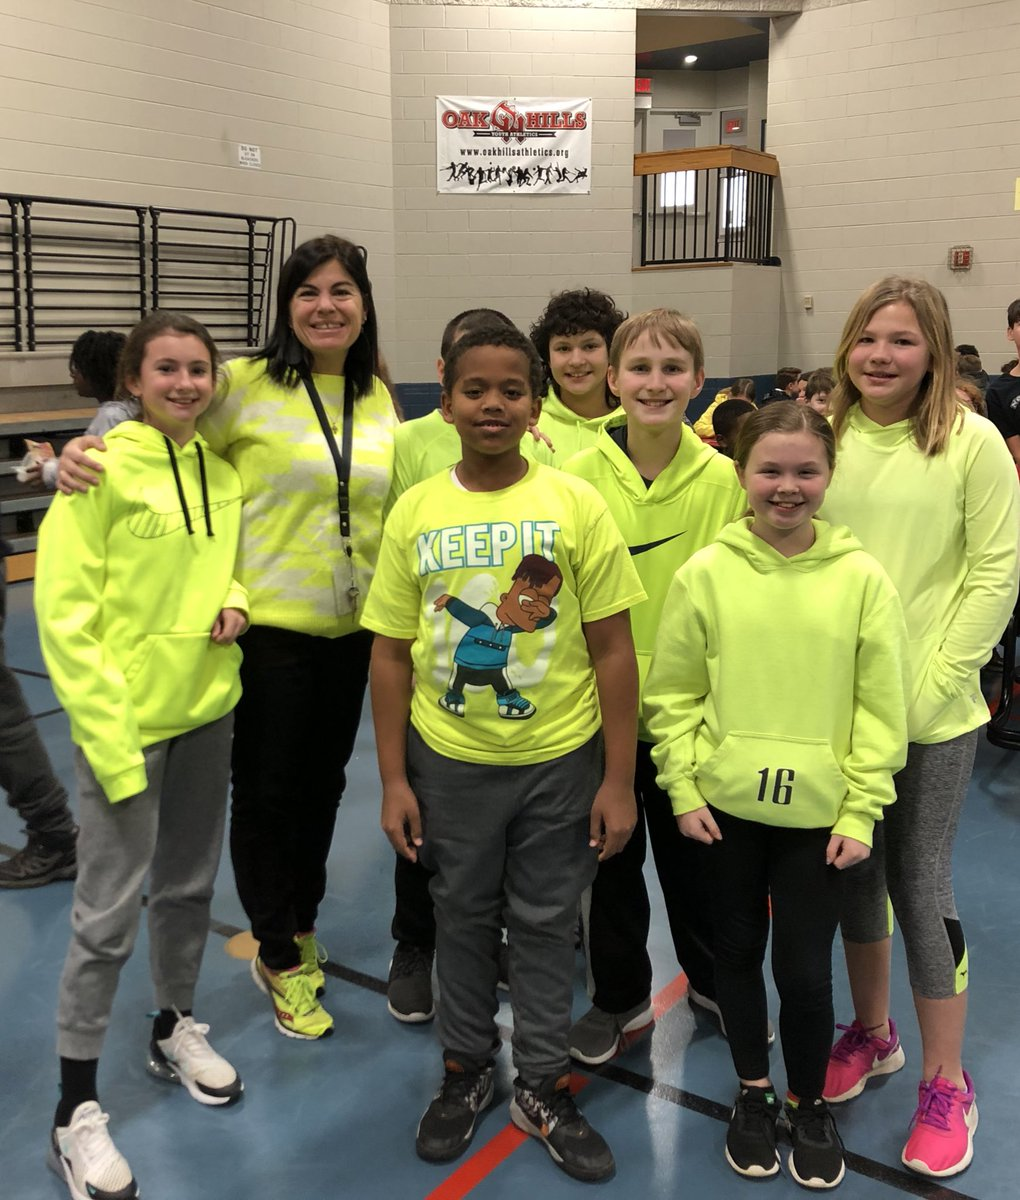 Sporting yellow to support the fight against childhood cancers! @BridgetownMS #OHBMSBest